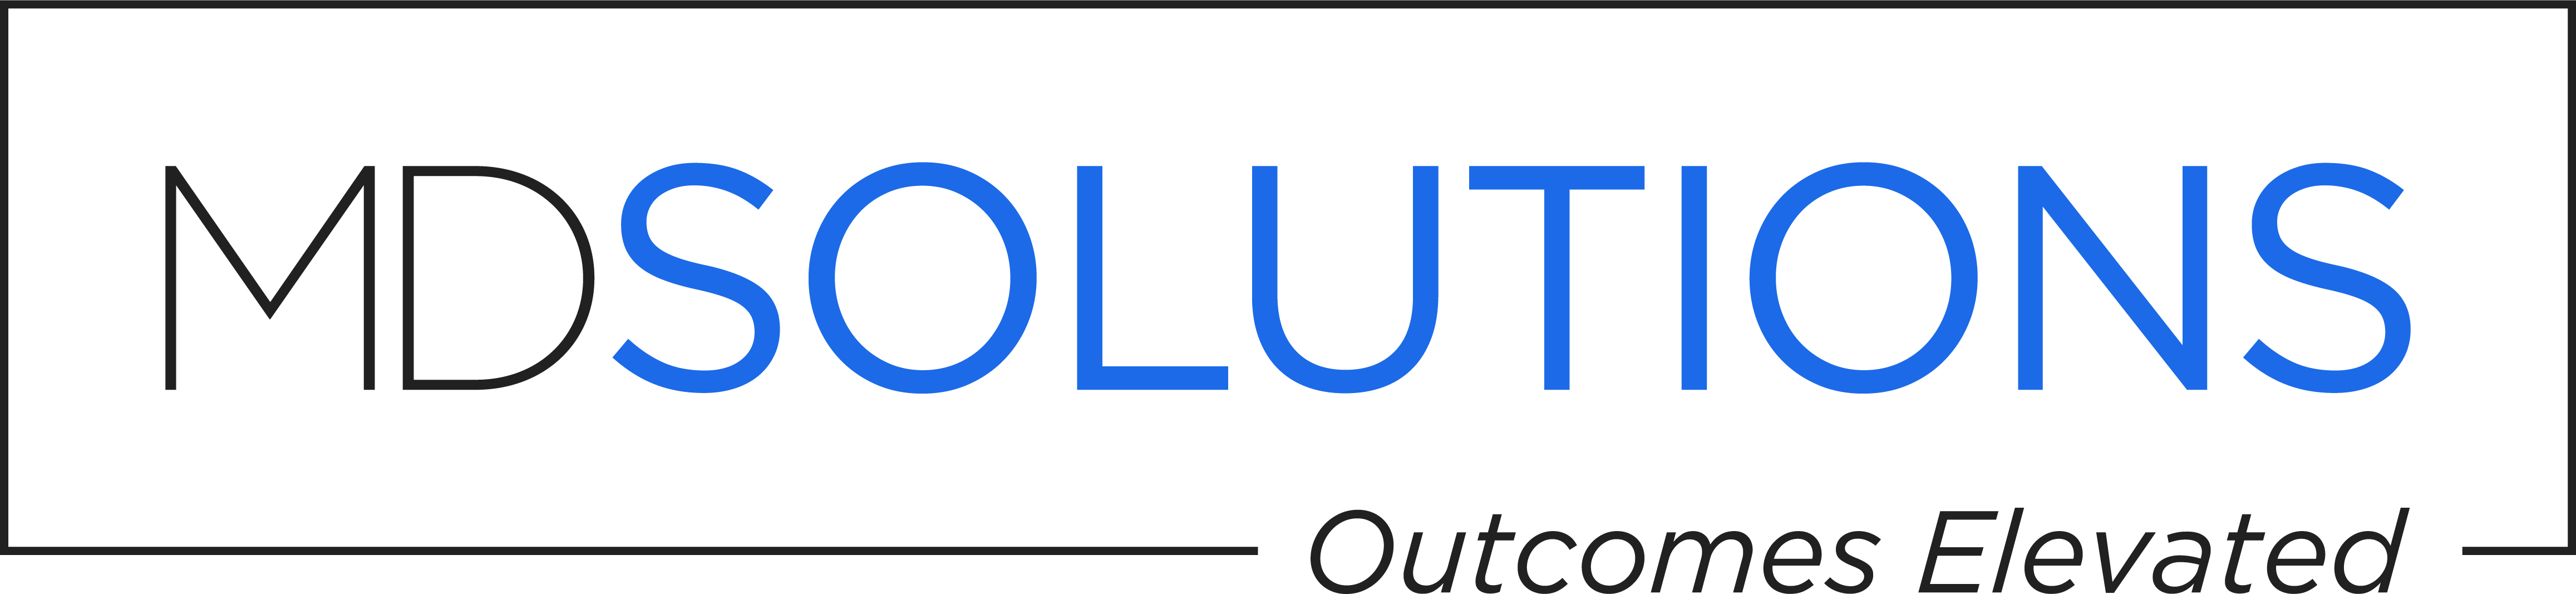 MD Solutions Australasia Pty Ltd